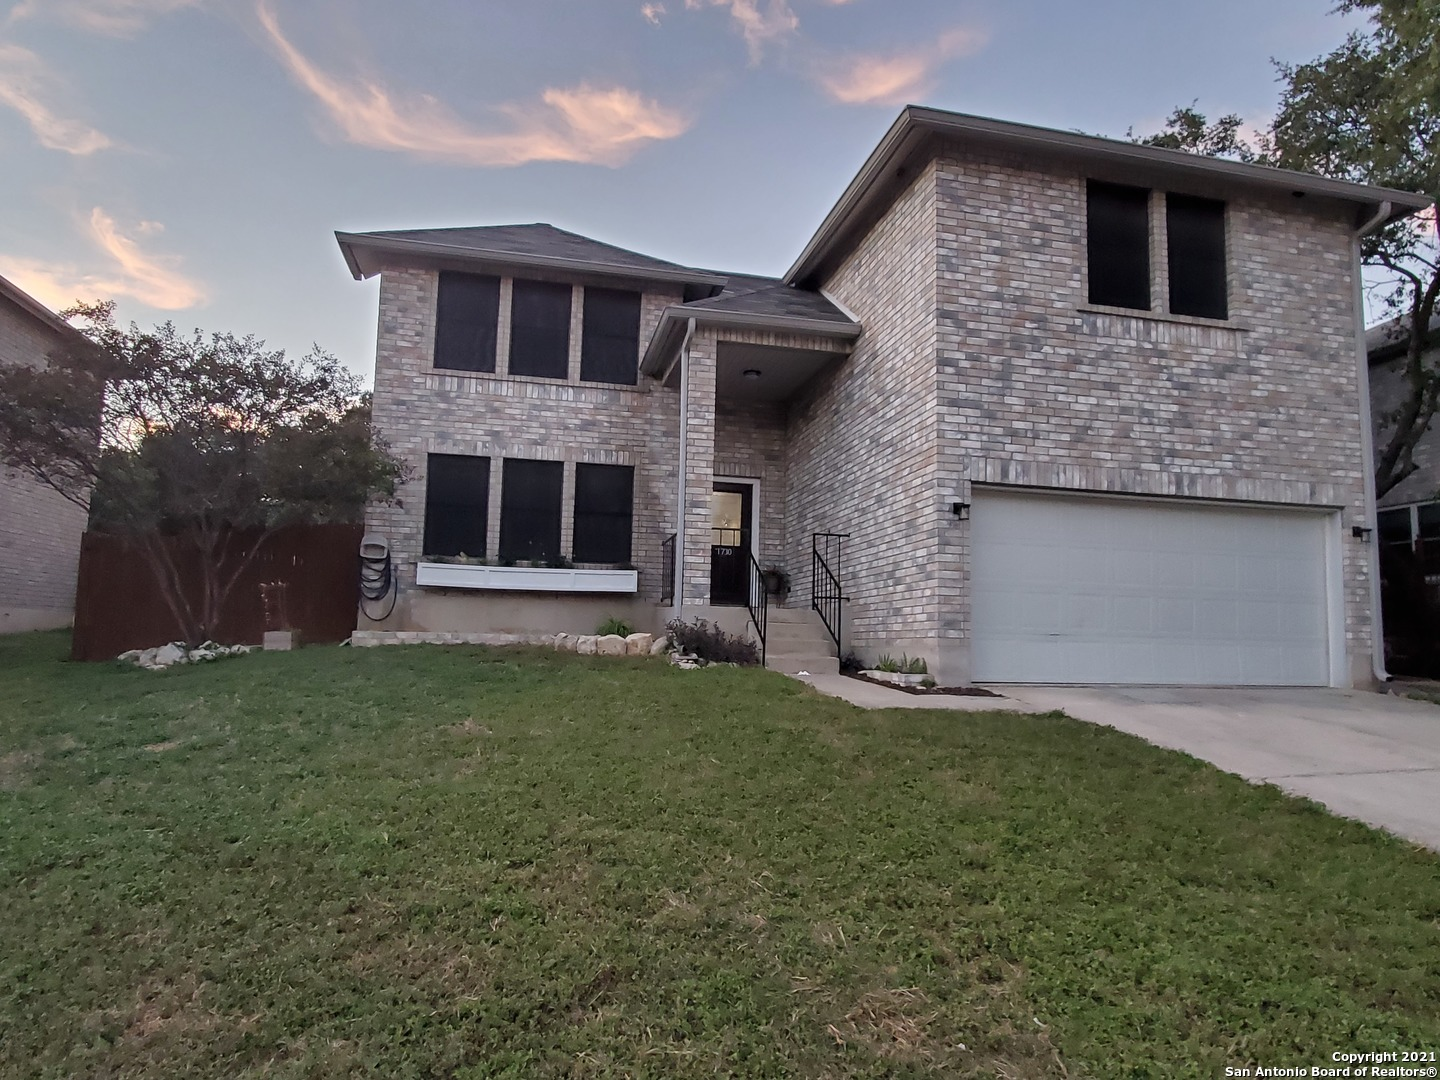 WOW, WHAT A GEM!  MANY UPGRADES, UNIQUE FEATURES & LOTS OF ROOM & ROOMS!  MUST SEE TO APPRECIATE!  H